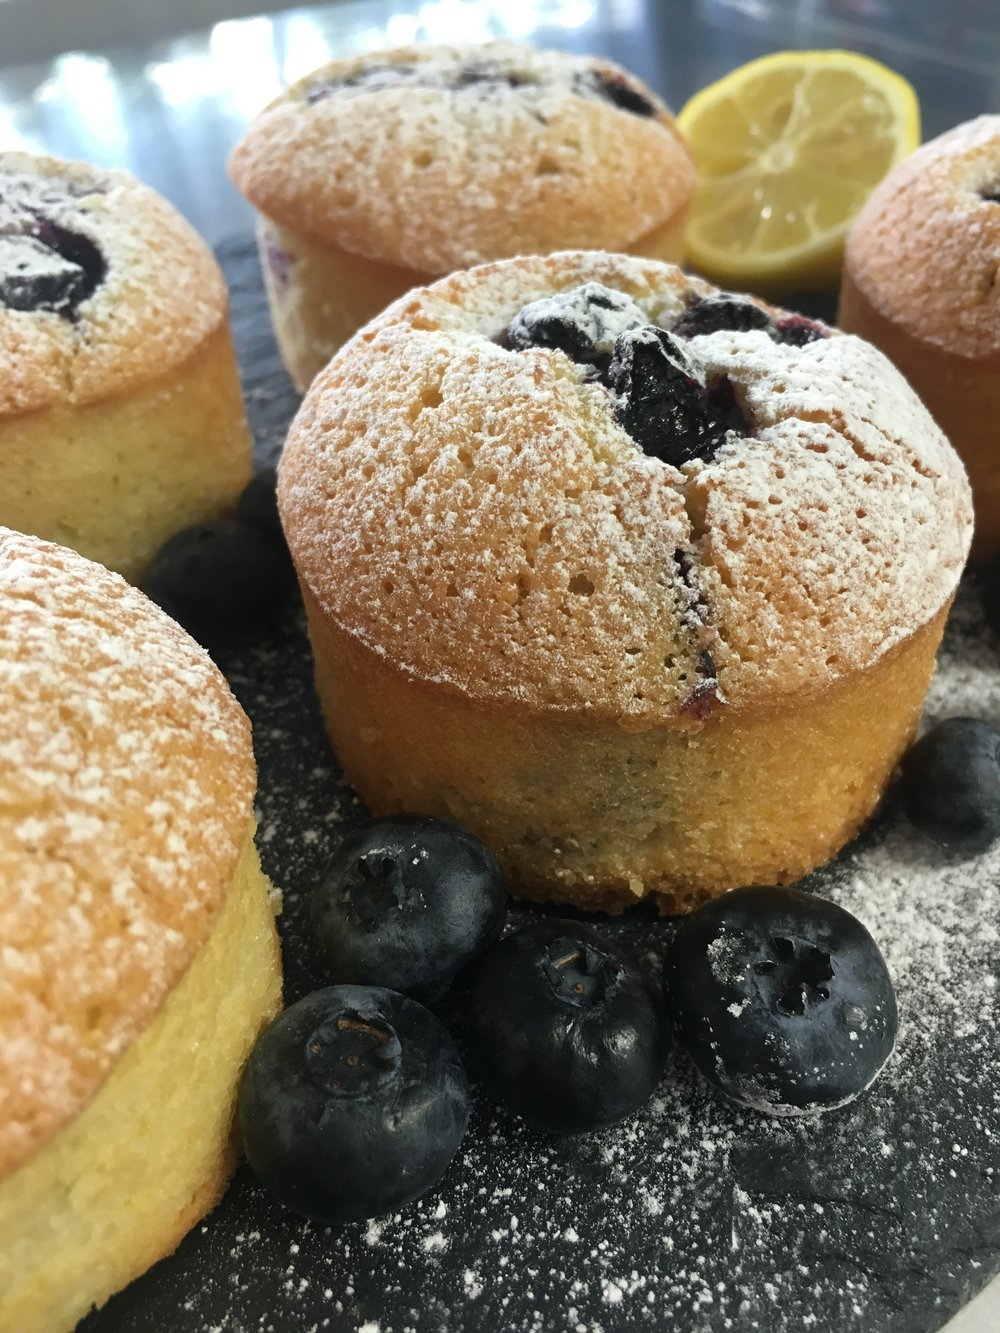 Blueberry & Lemon Friands (Recipe Coming Soon)